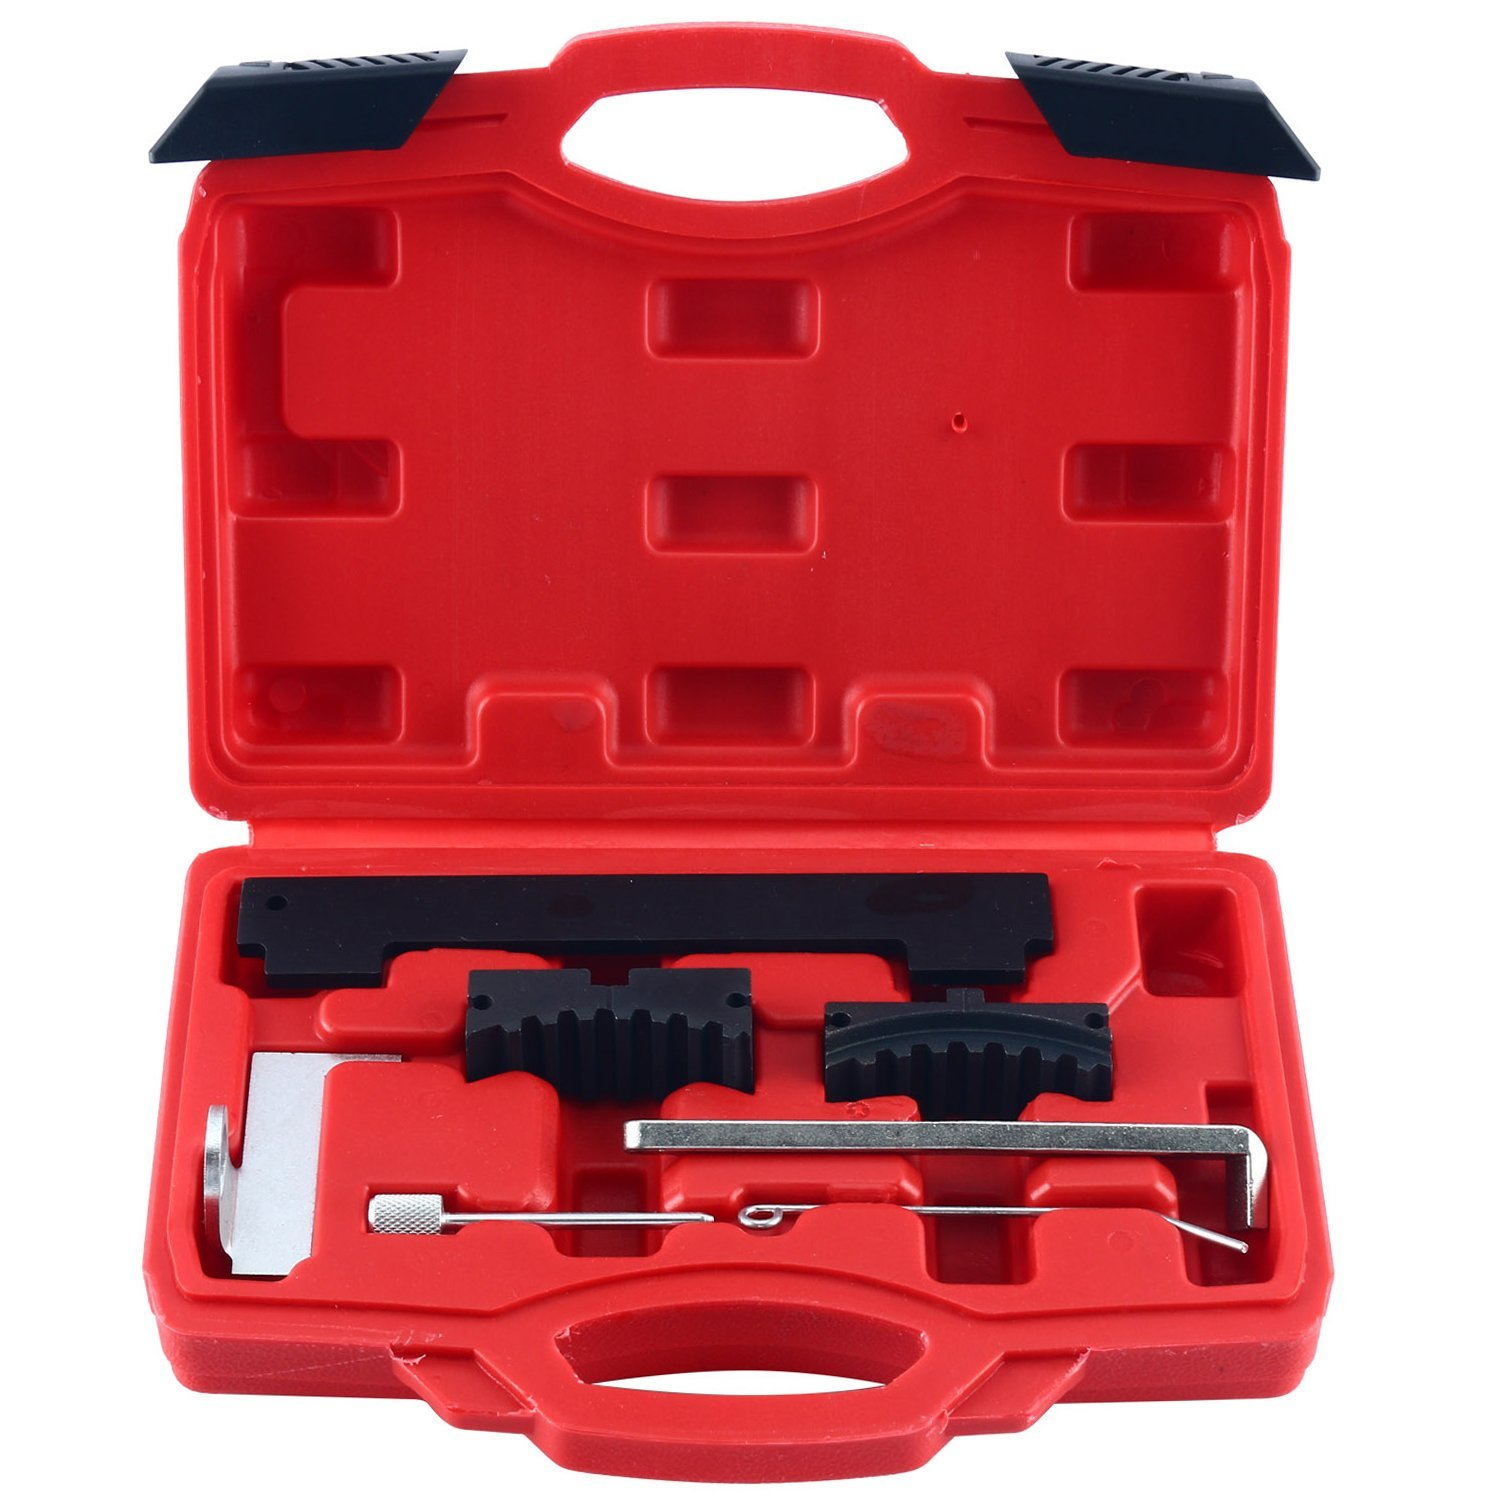 8MILELAKE Chevrolet Alfa Romeo 16V 1.6 1.8 Camshaft Tensioning Locking Alignment Timing Tool Kit